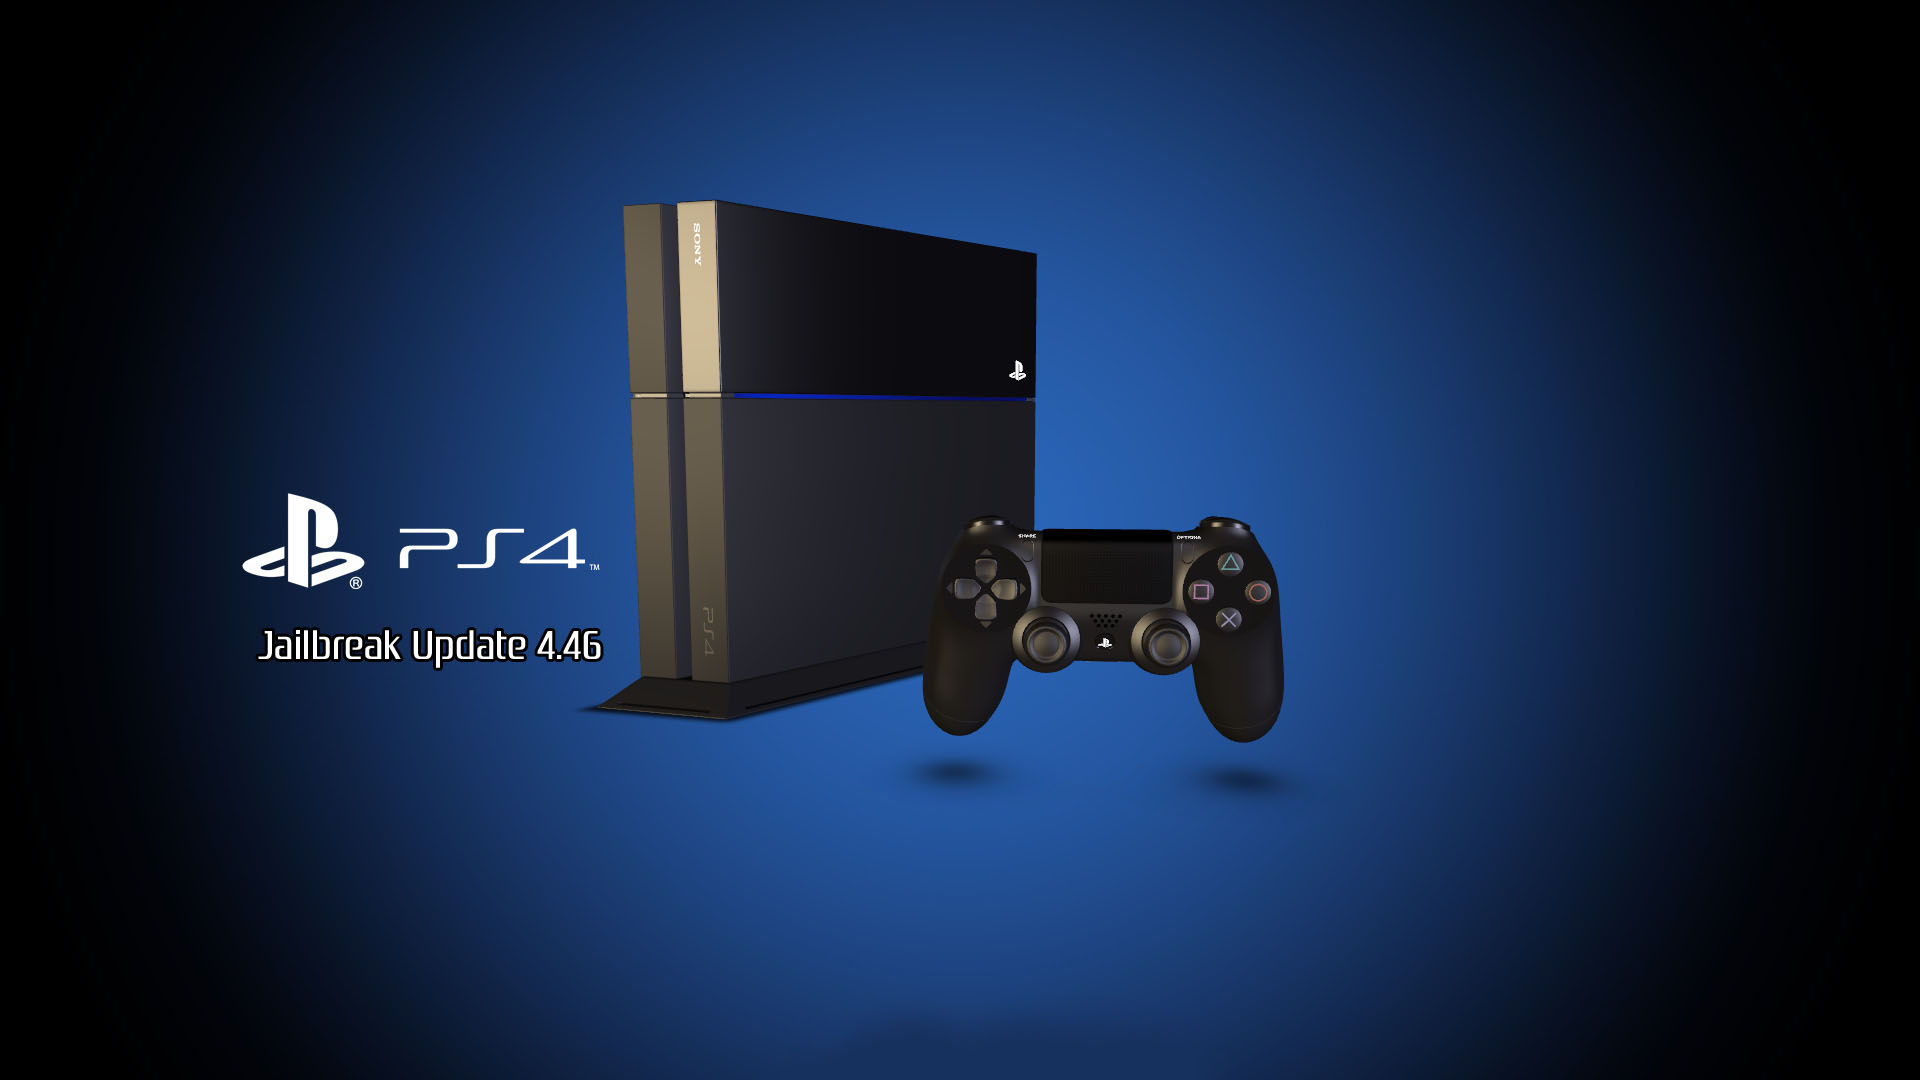 Playstation 4 Kırıldımı ? PS4 Jailbreak | Alican HAZIR